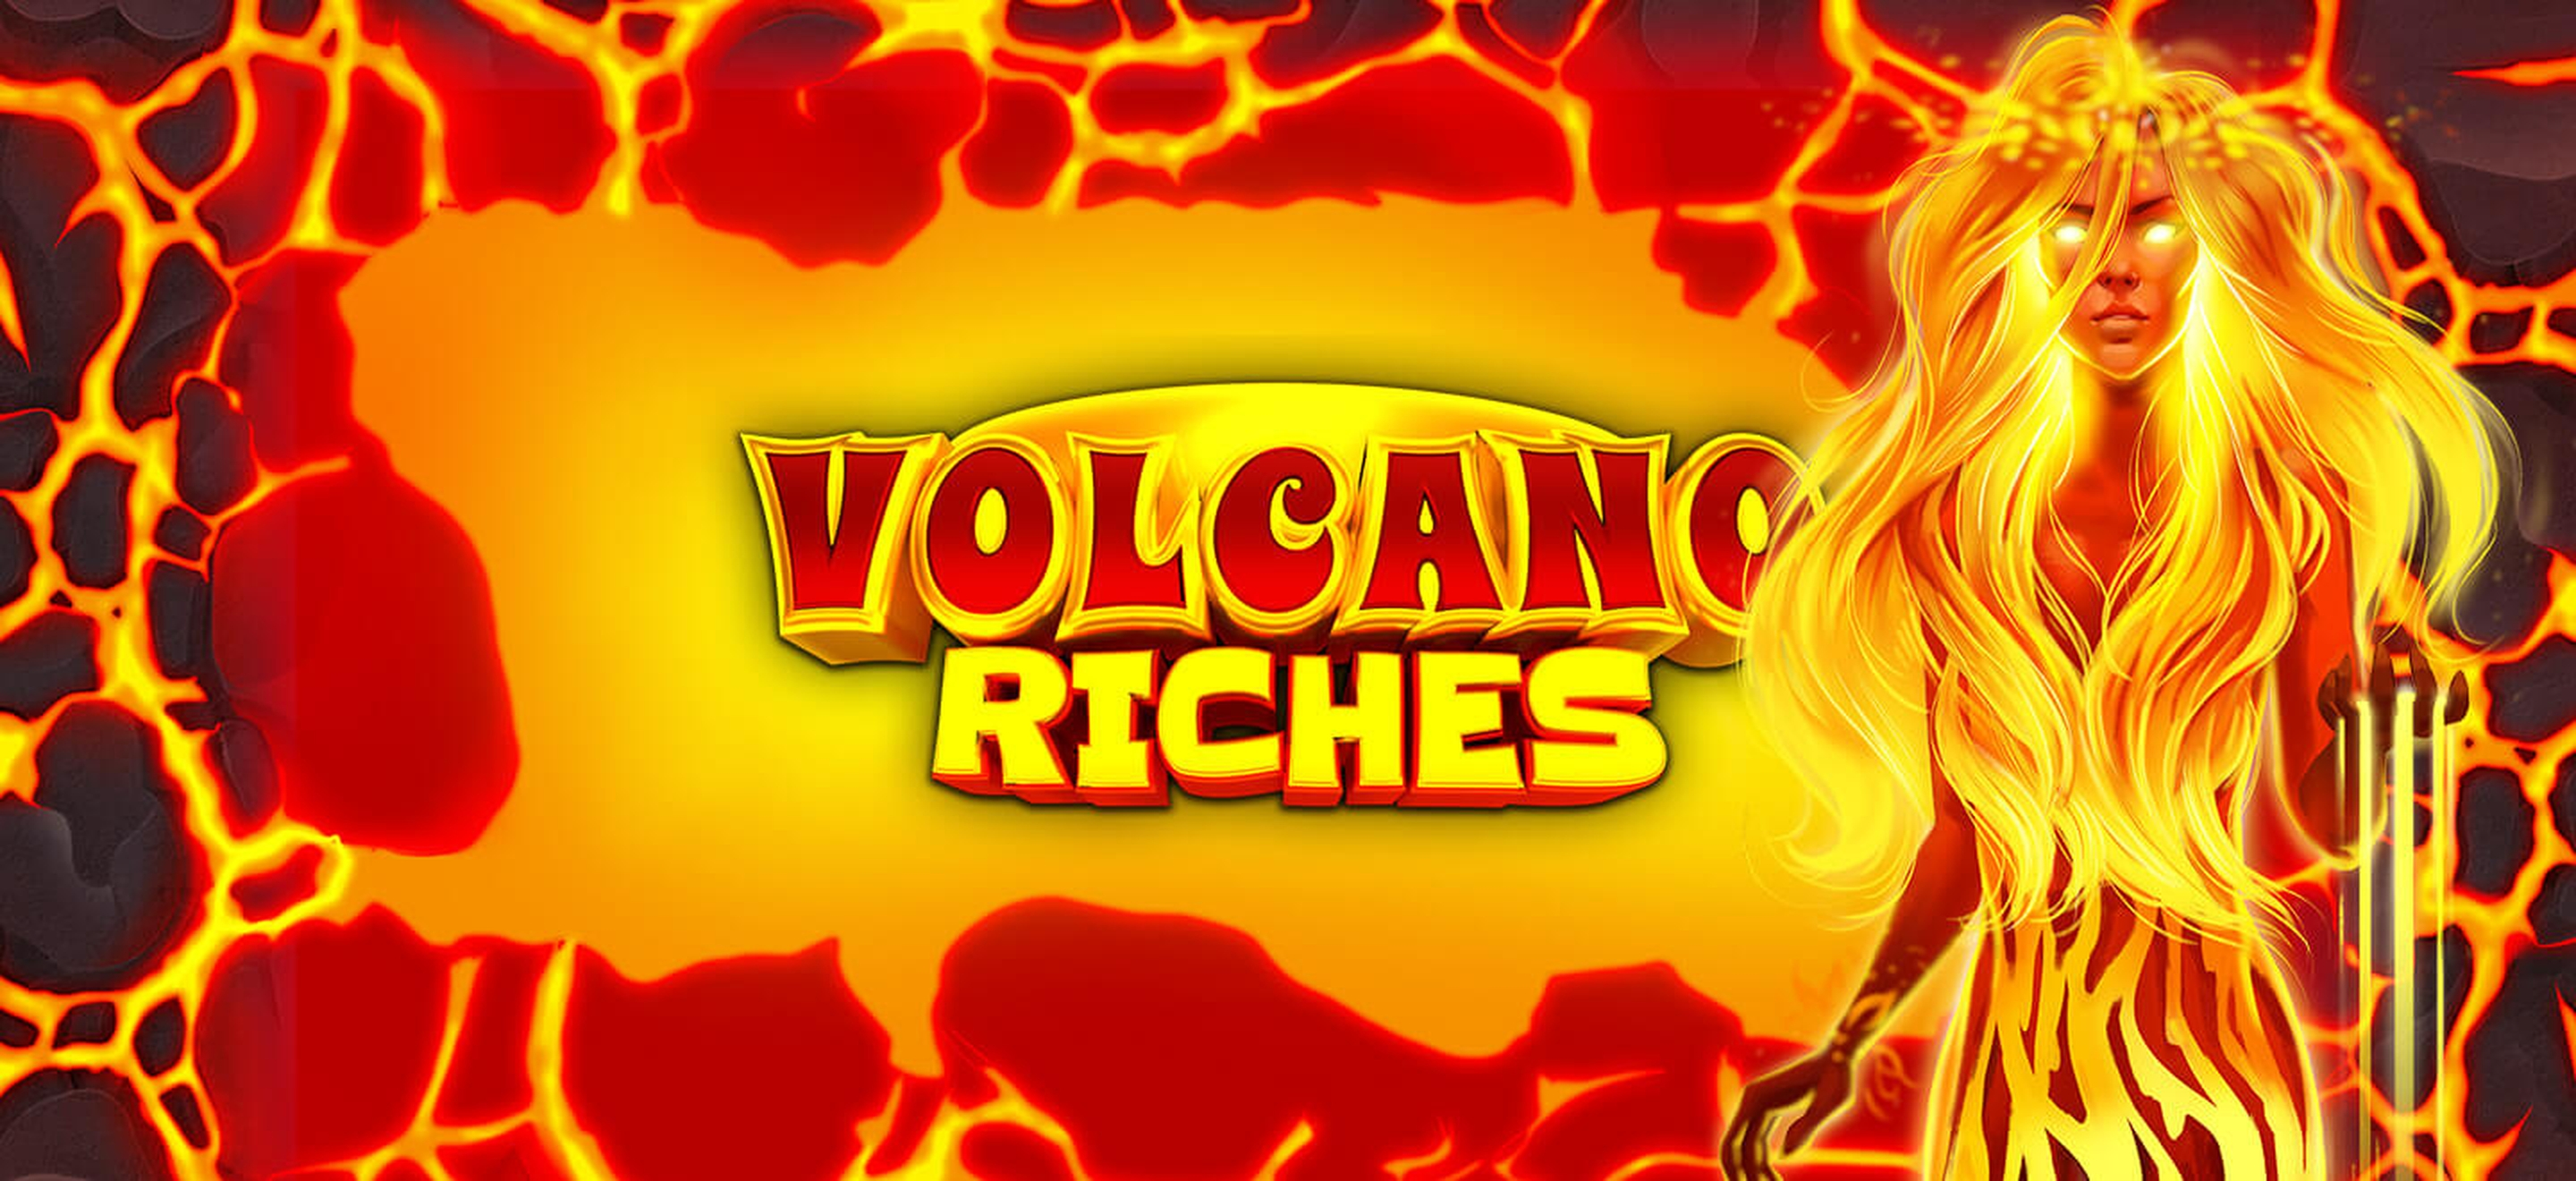 The Volcano Riches Online Slot Demo Game by Quickspin